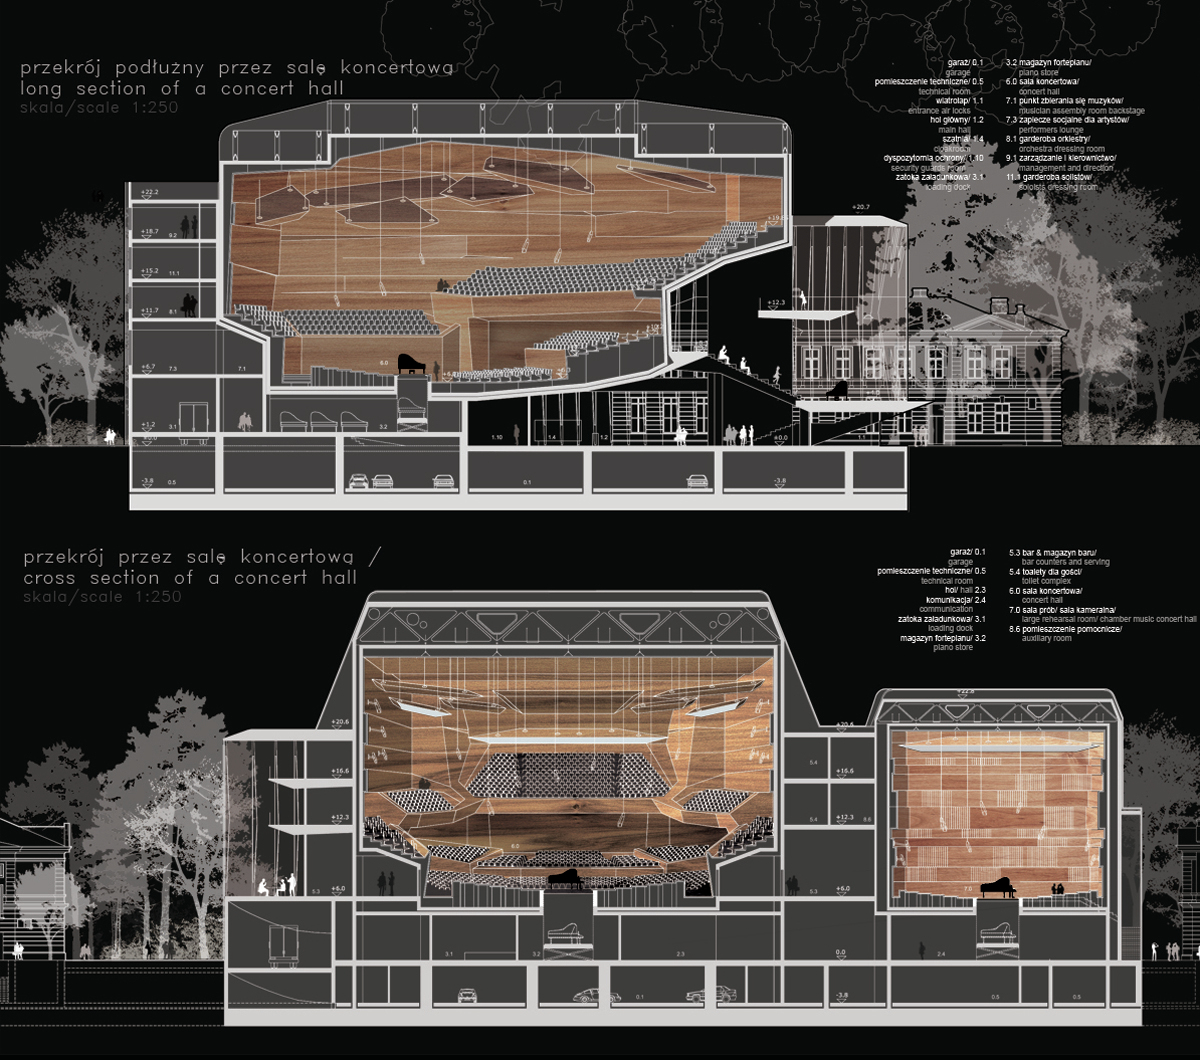 Hall Arch Designs For: Gallery Of Sinfonia Varsovia Concert Hall / Hermanowicz